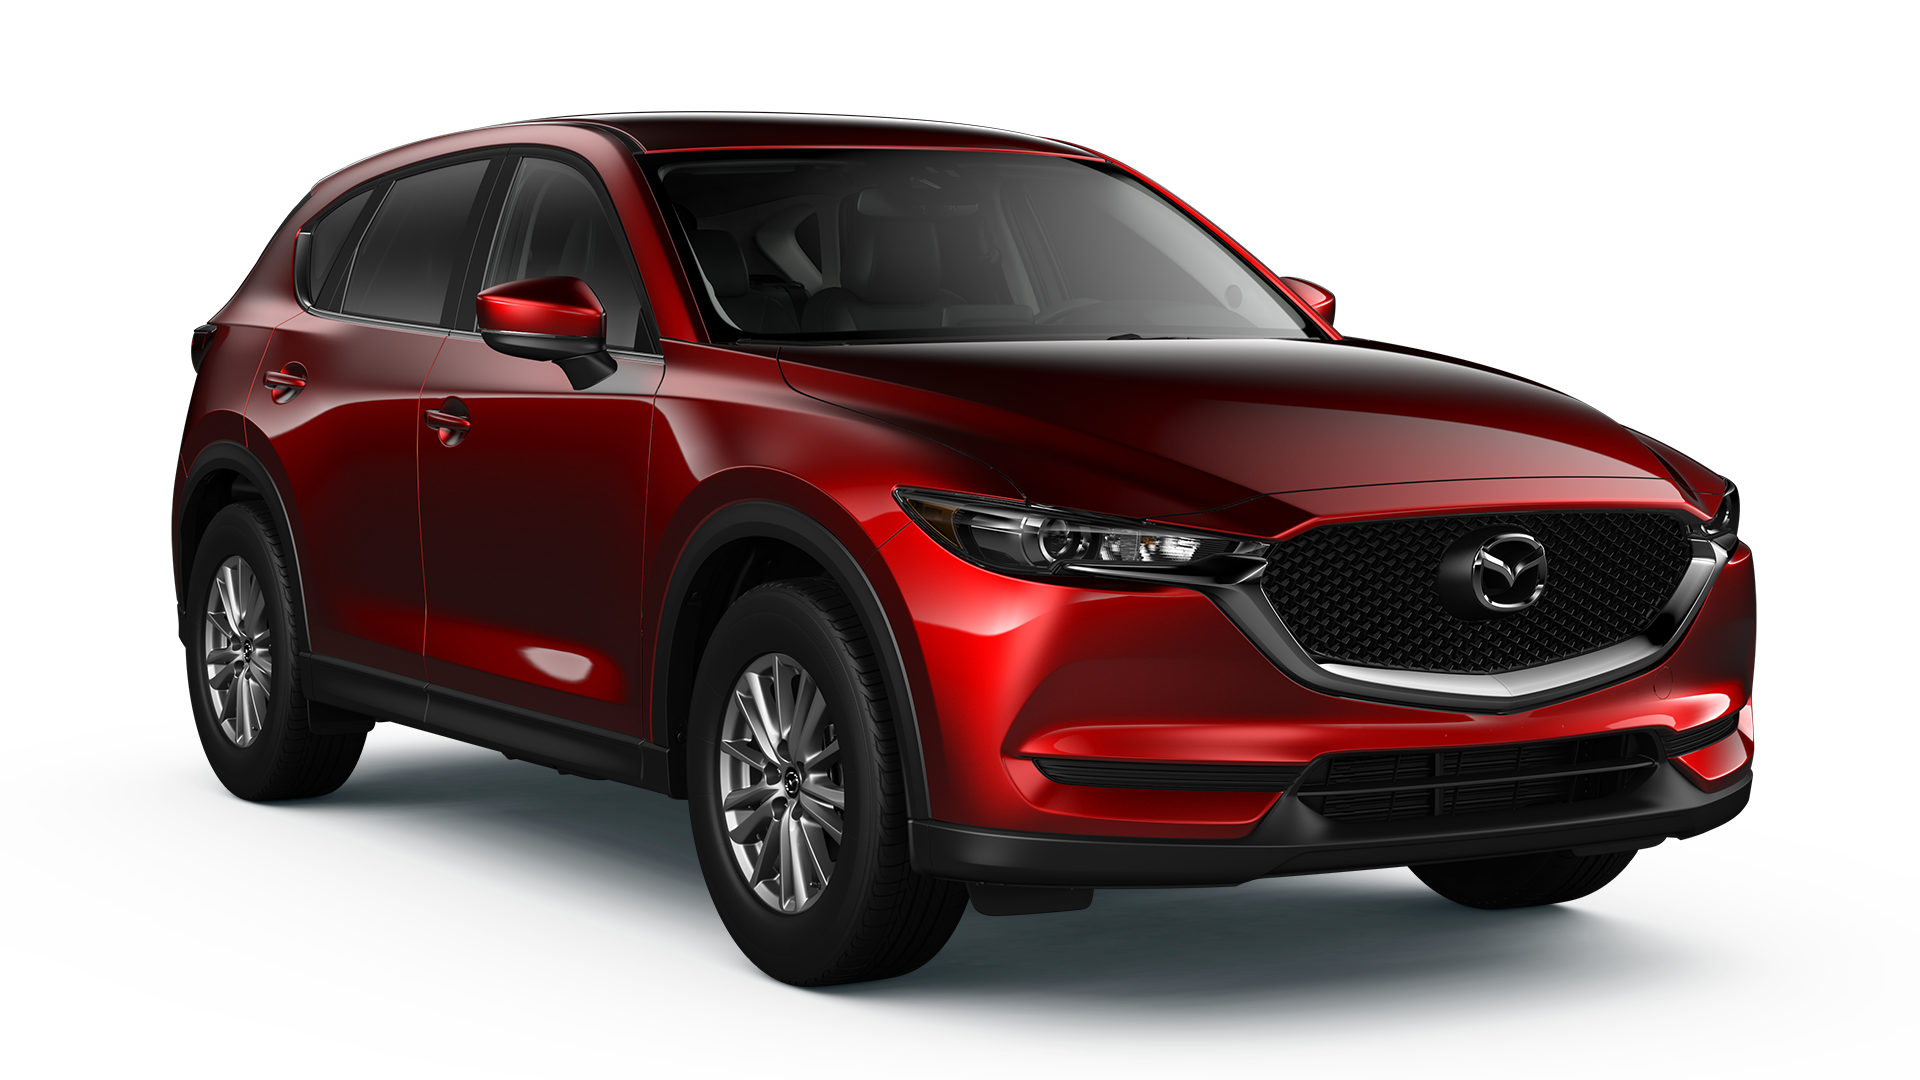 cx pricing the editor mazda sheetmetal announced mazdacx message price drive